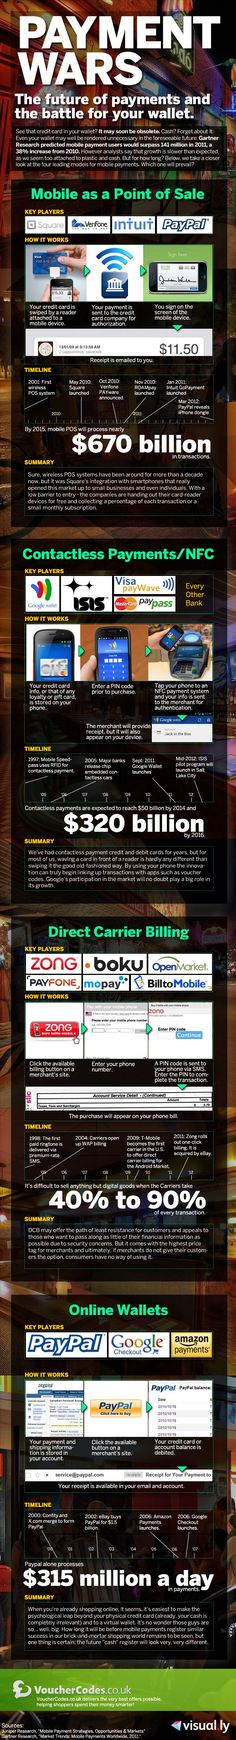 Payment wars: The future of payments and the battle for your wallet #infographic #mobilemoney